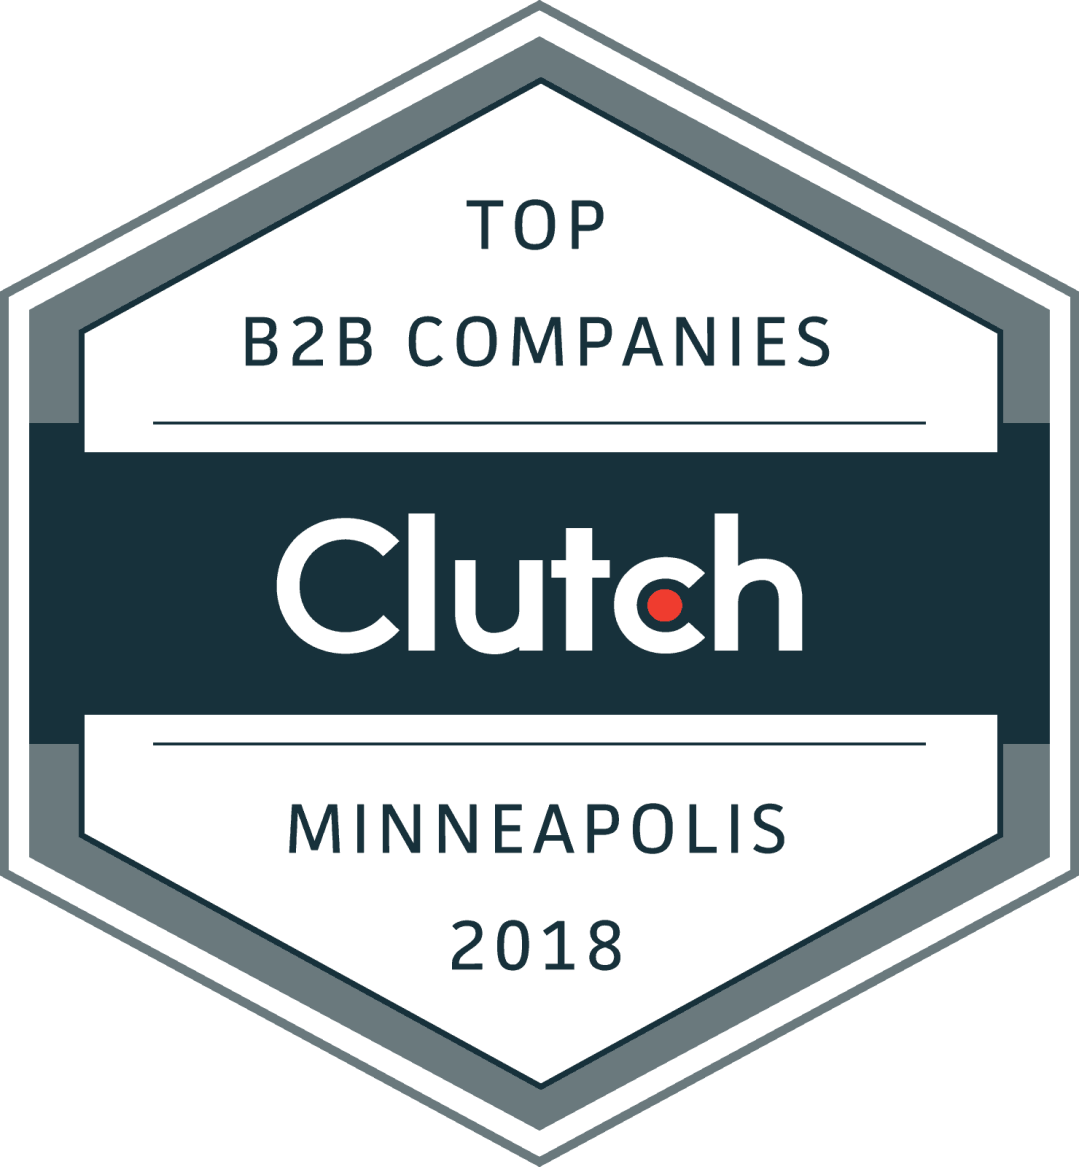 Top B2B Companies_Minneapolis_2018